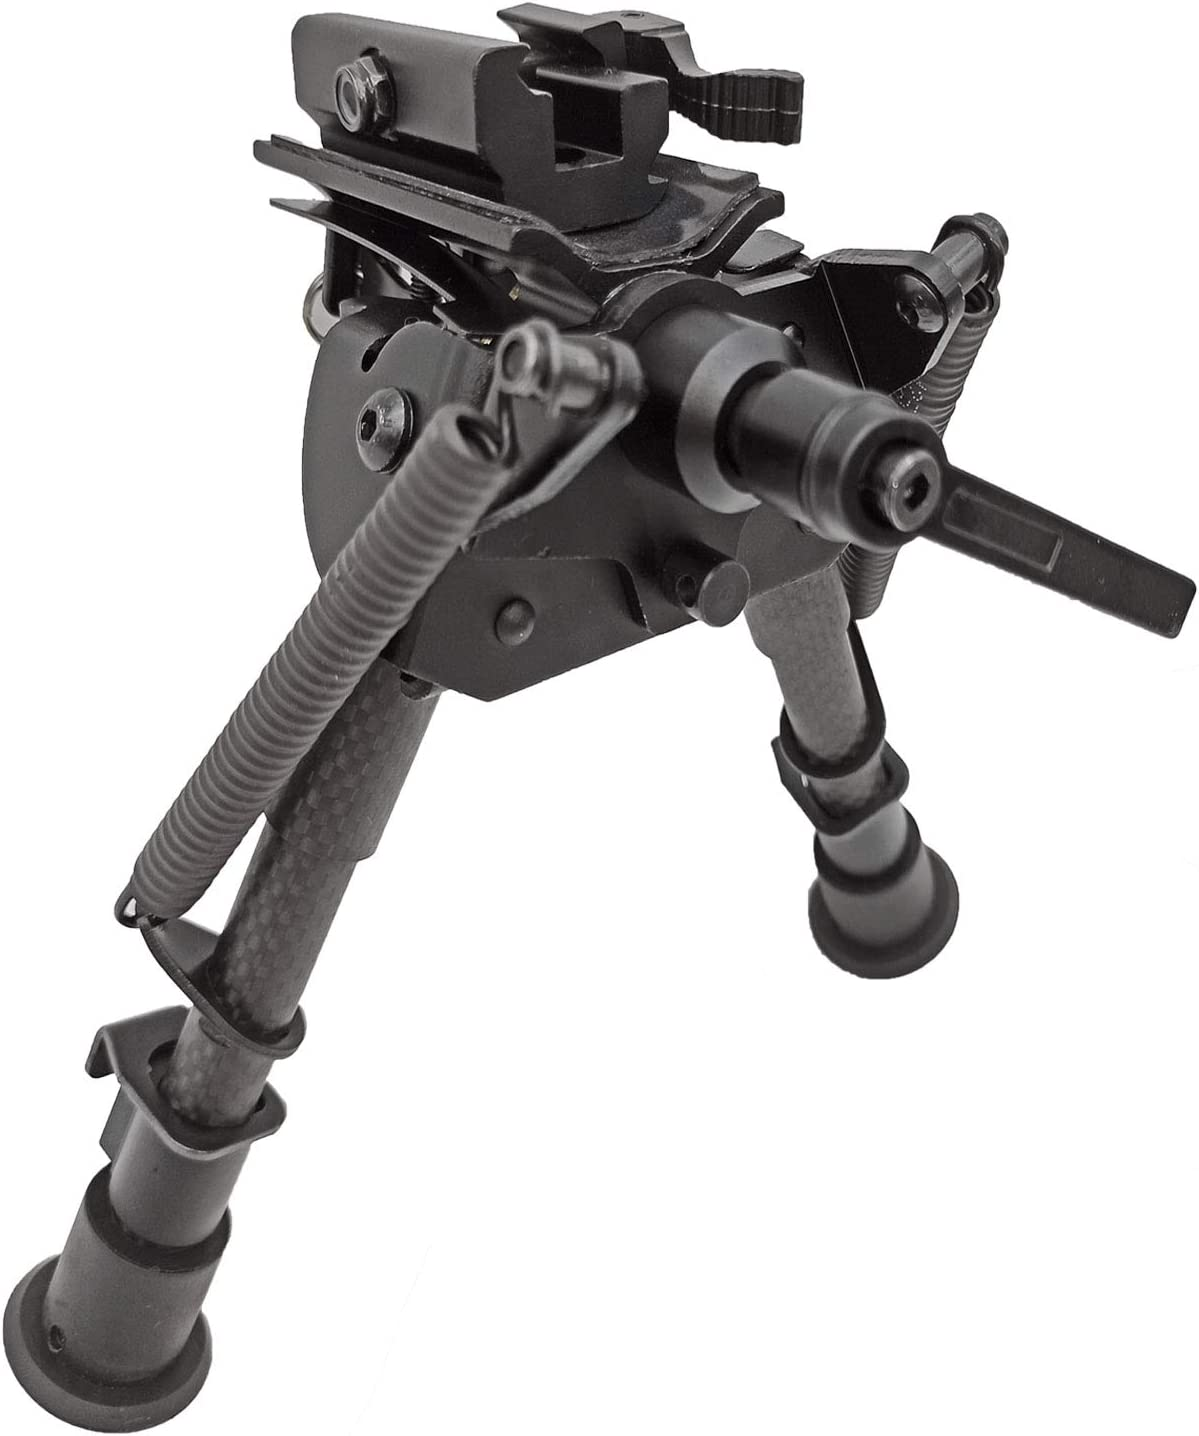 ACTIVE-8 6-9 Inches Carbon Fiber Rifle Bipod Picatinny Bipod W//O Adapter 4 Color